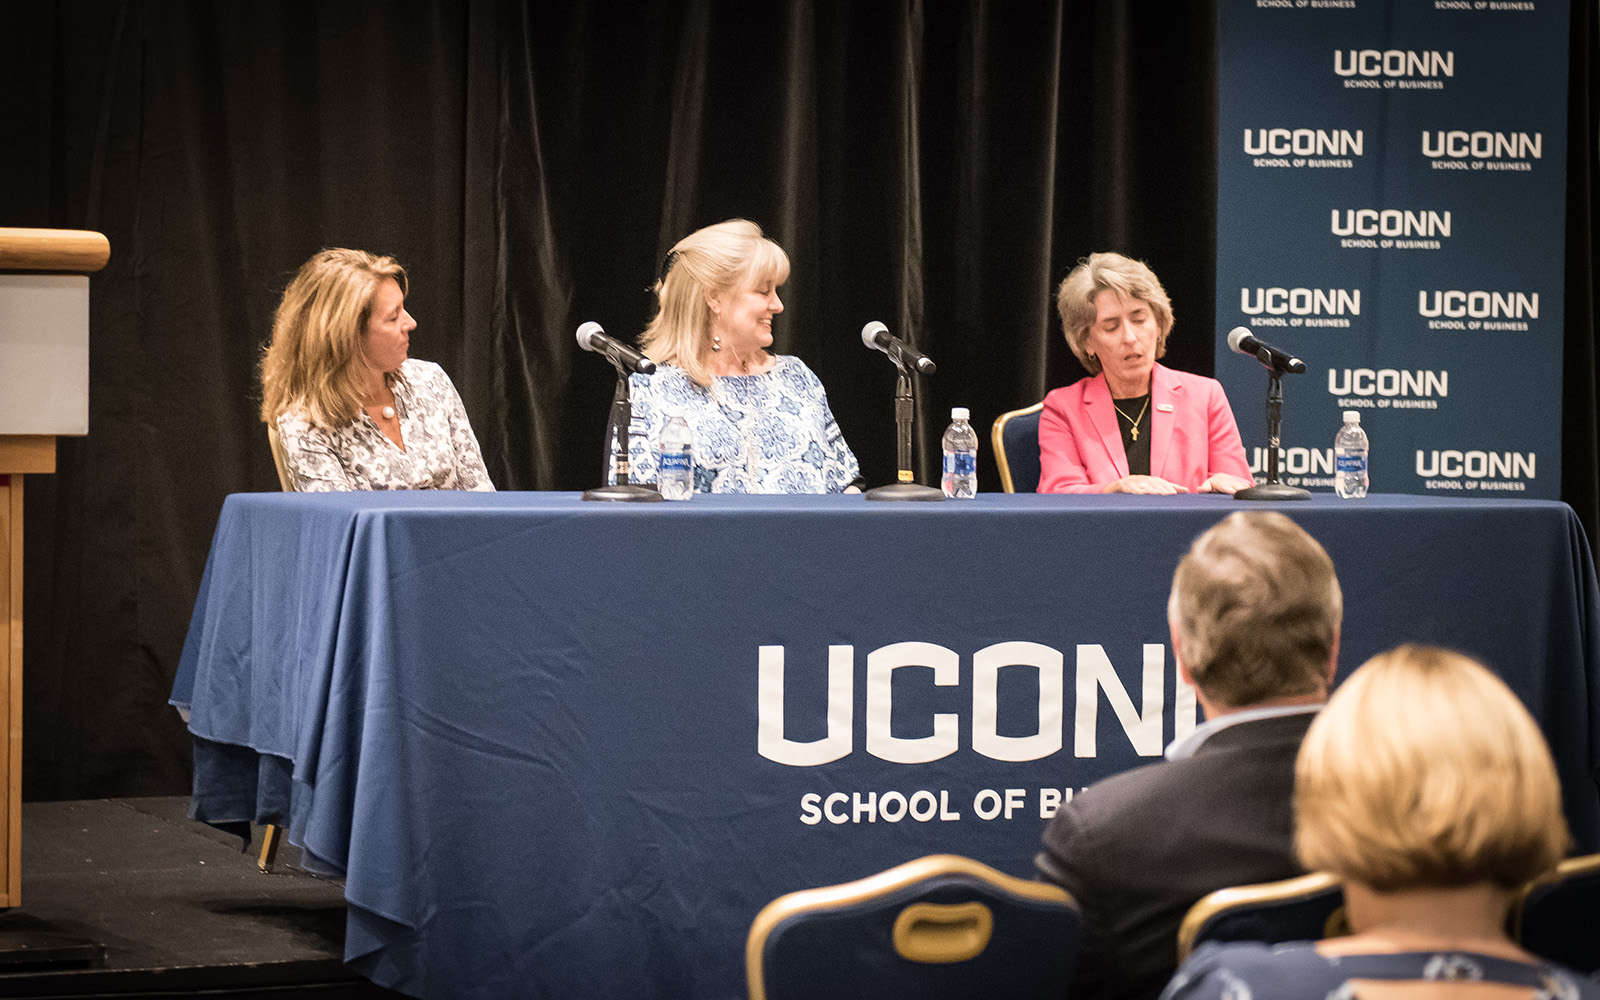 Panelists to Women MBA Students: Owning a Company Offers Many Rewards, Challenges